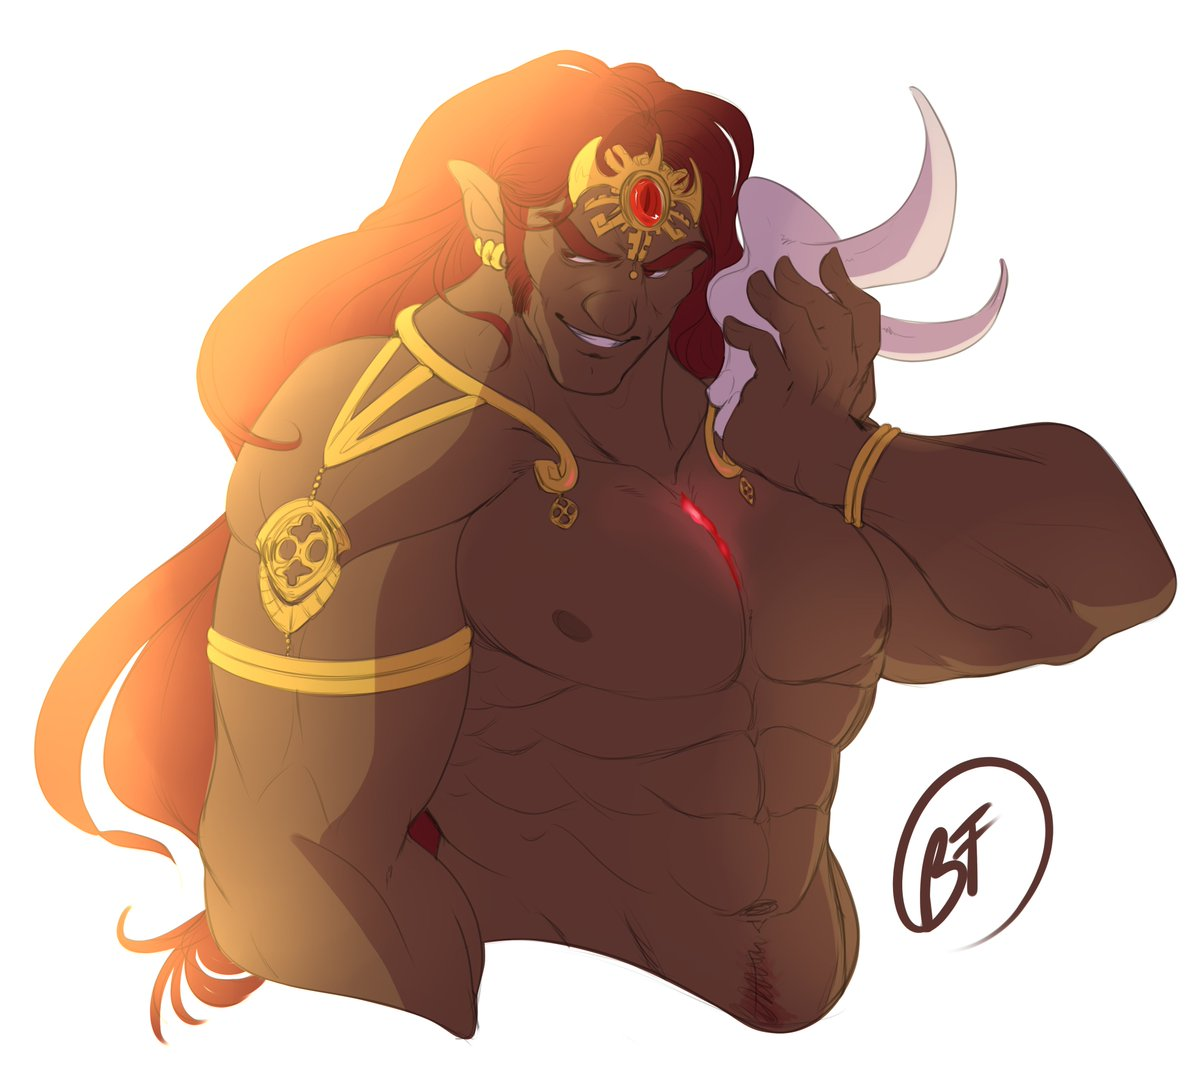 (Run Away With Me by Carly Rae Jepsen starts playing in the background.) Please, suh, please re-hydrate my Daddy. #Ganondorf #ganon